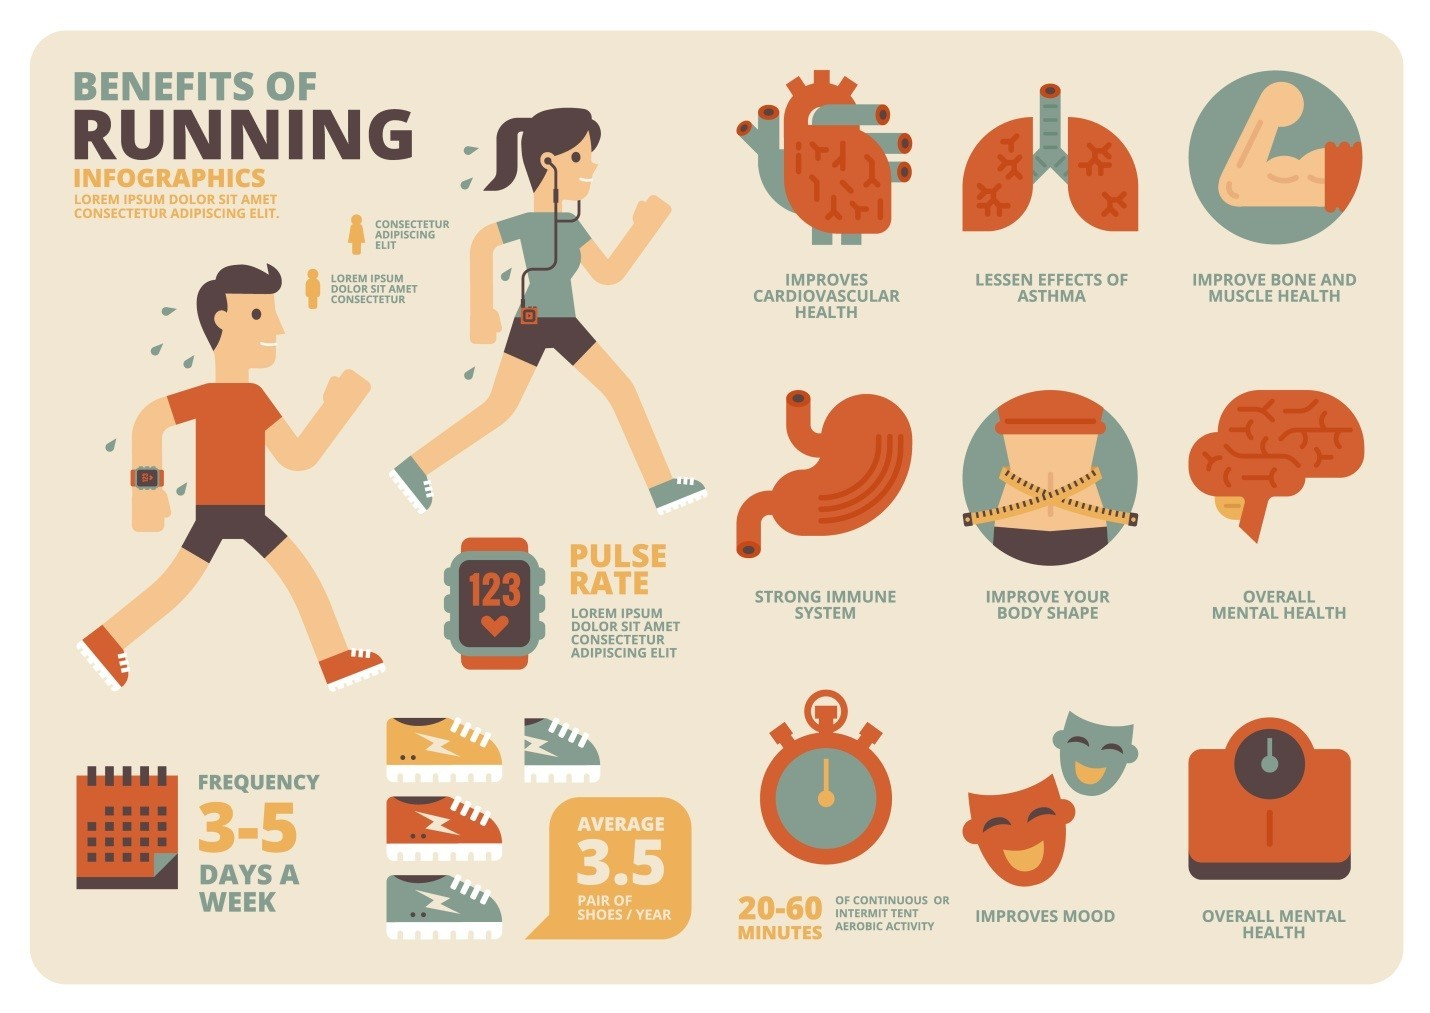 Why you should go run every day